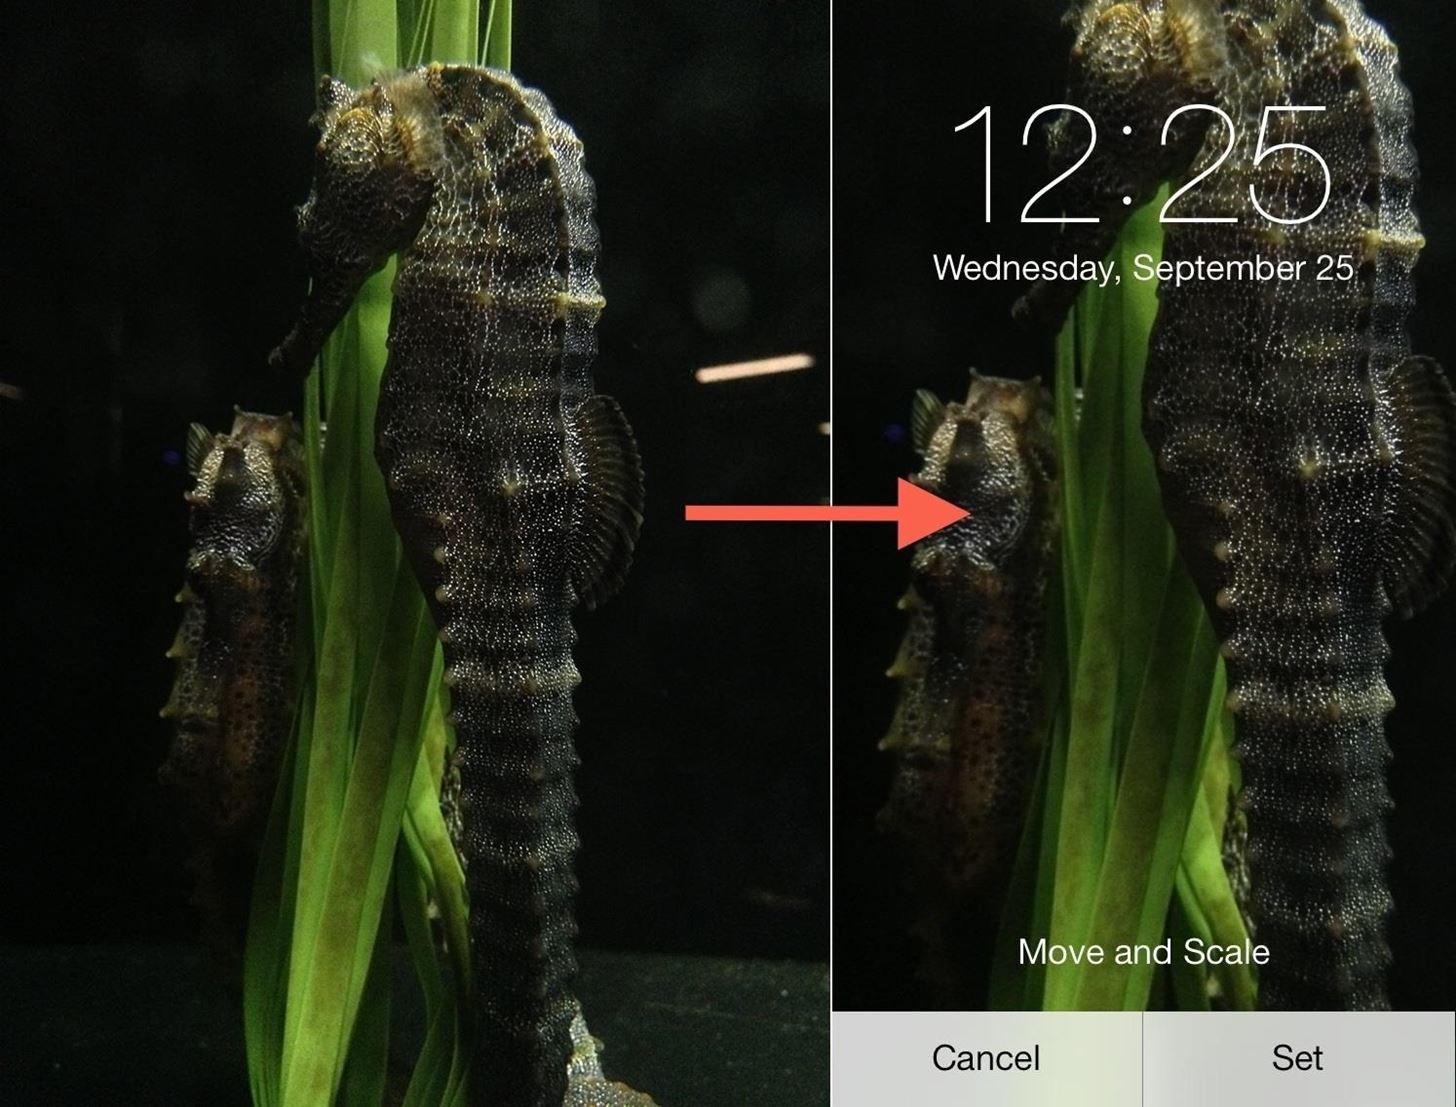 Fixing iOS 7 Wallpaper Woes: How to Scale, Crop, Align, & Design the Perfect iPhone Background